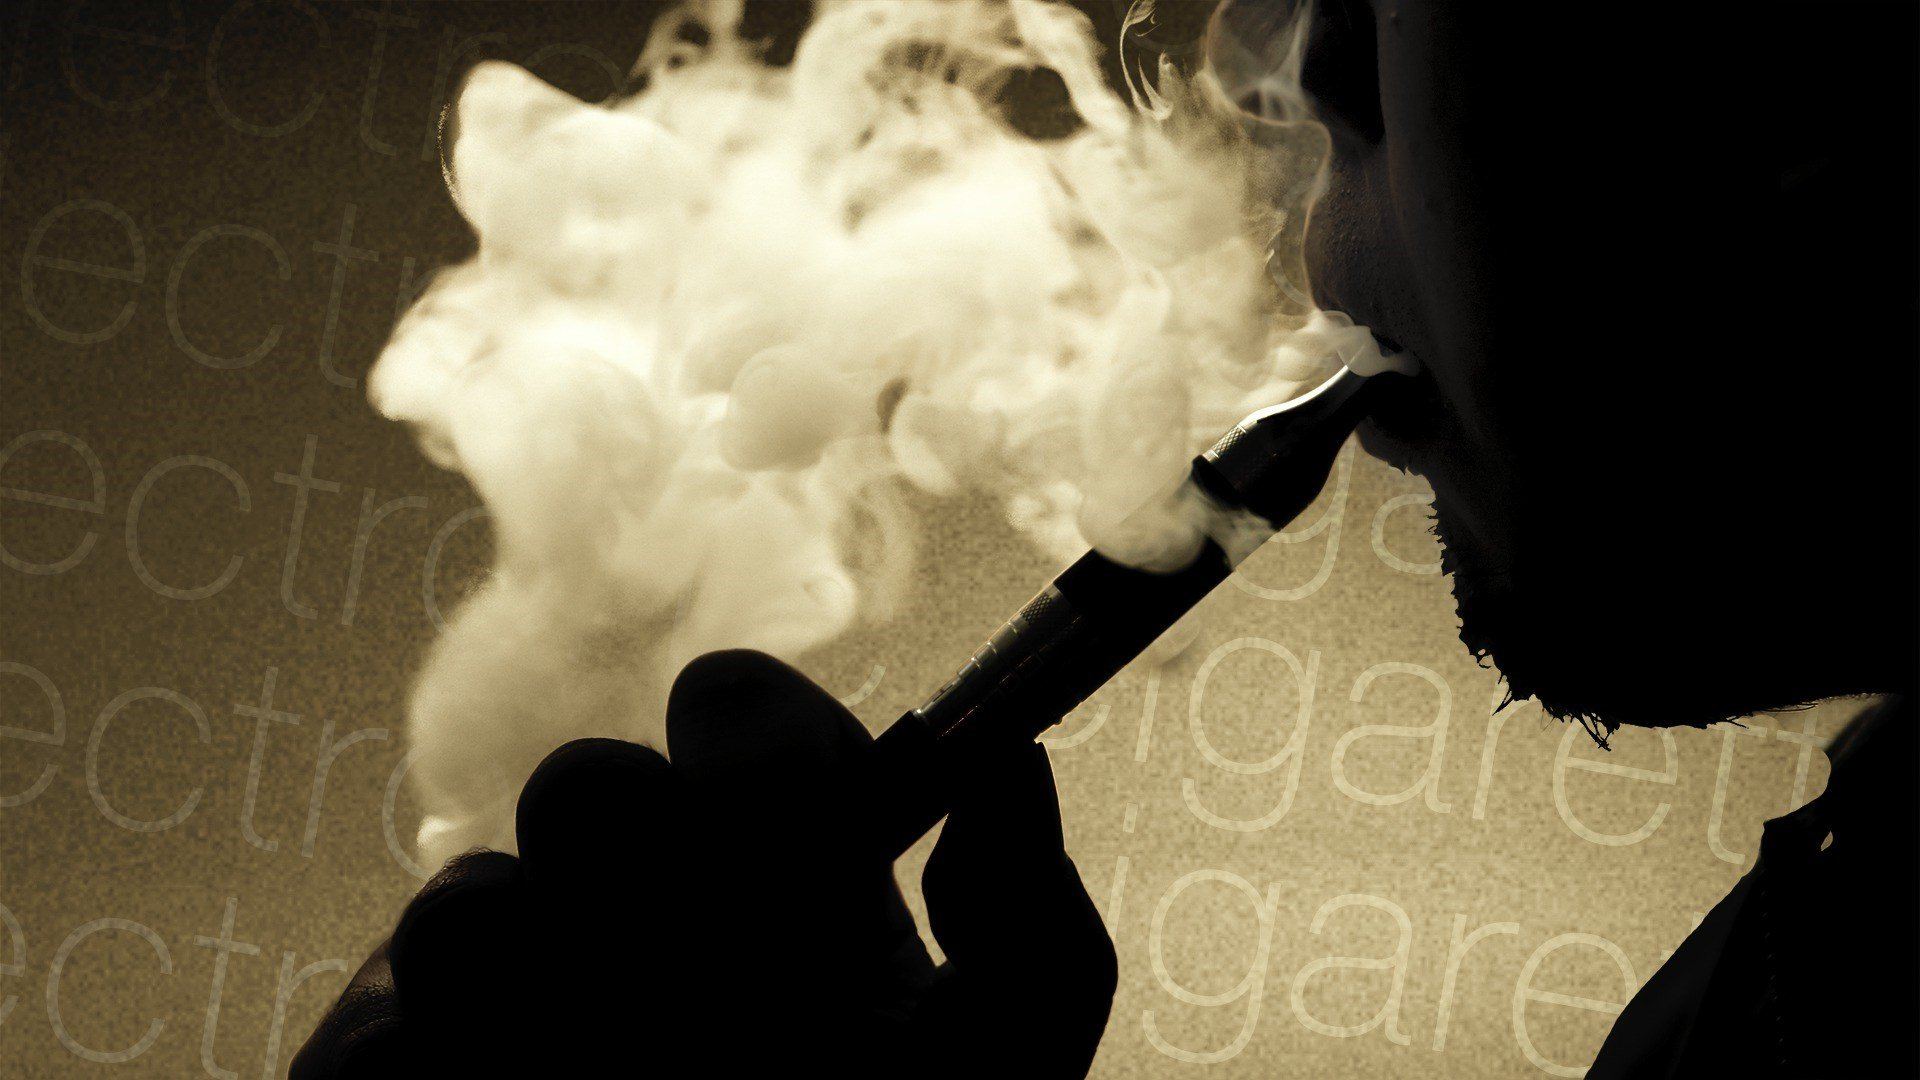 NY adds vaping to smoking ban statewide